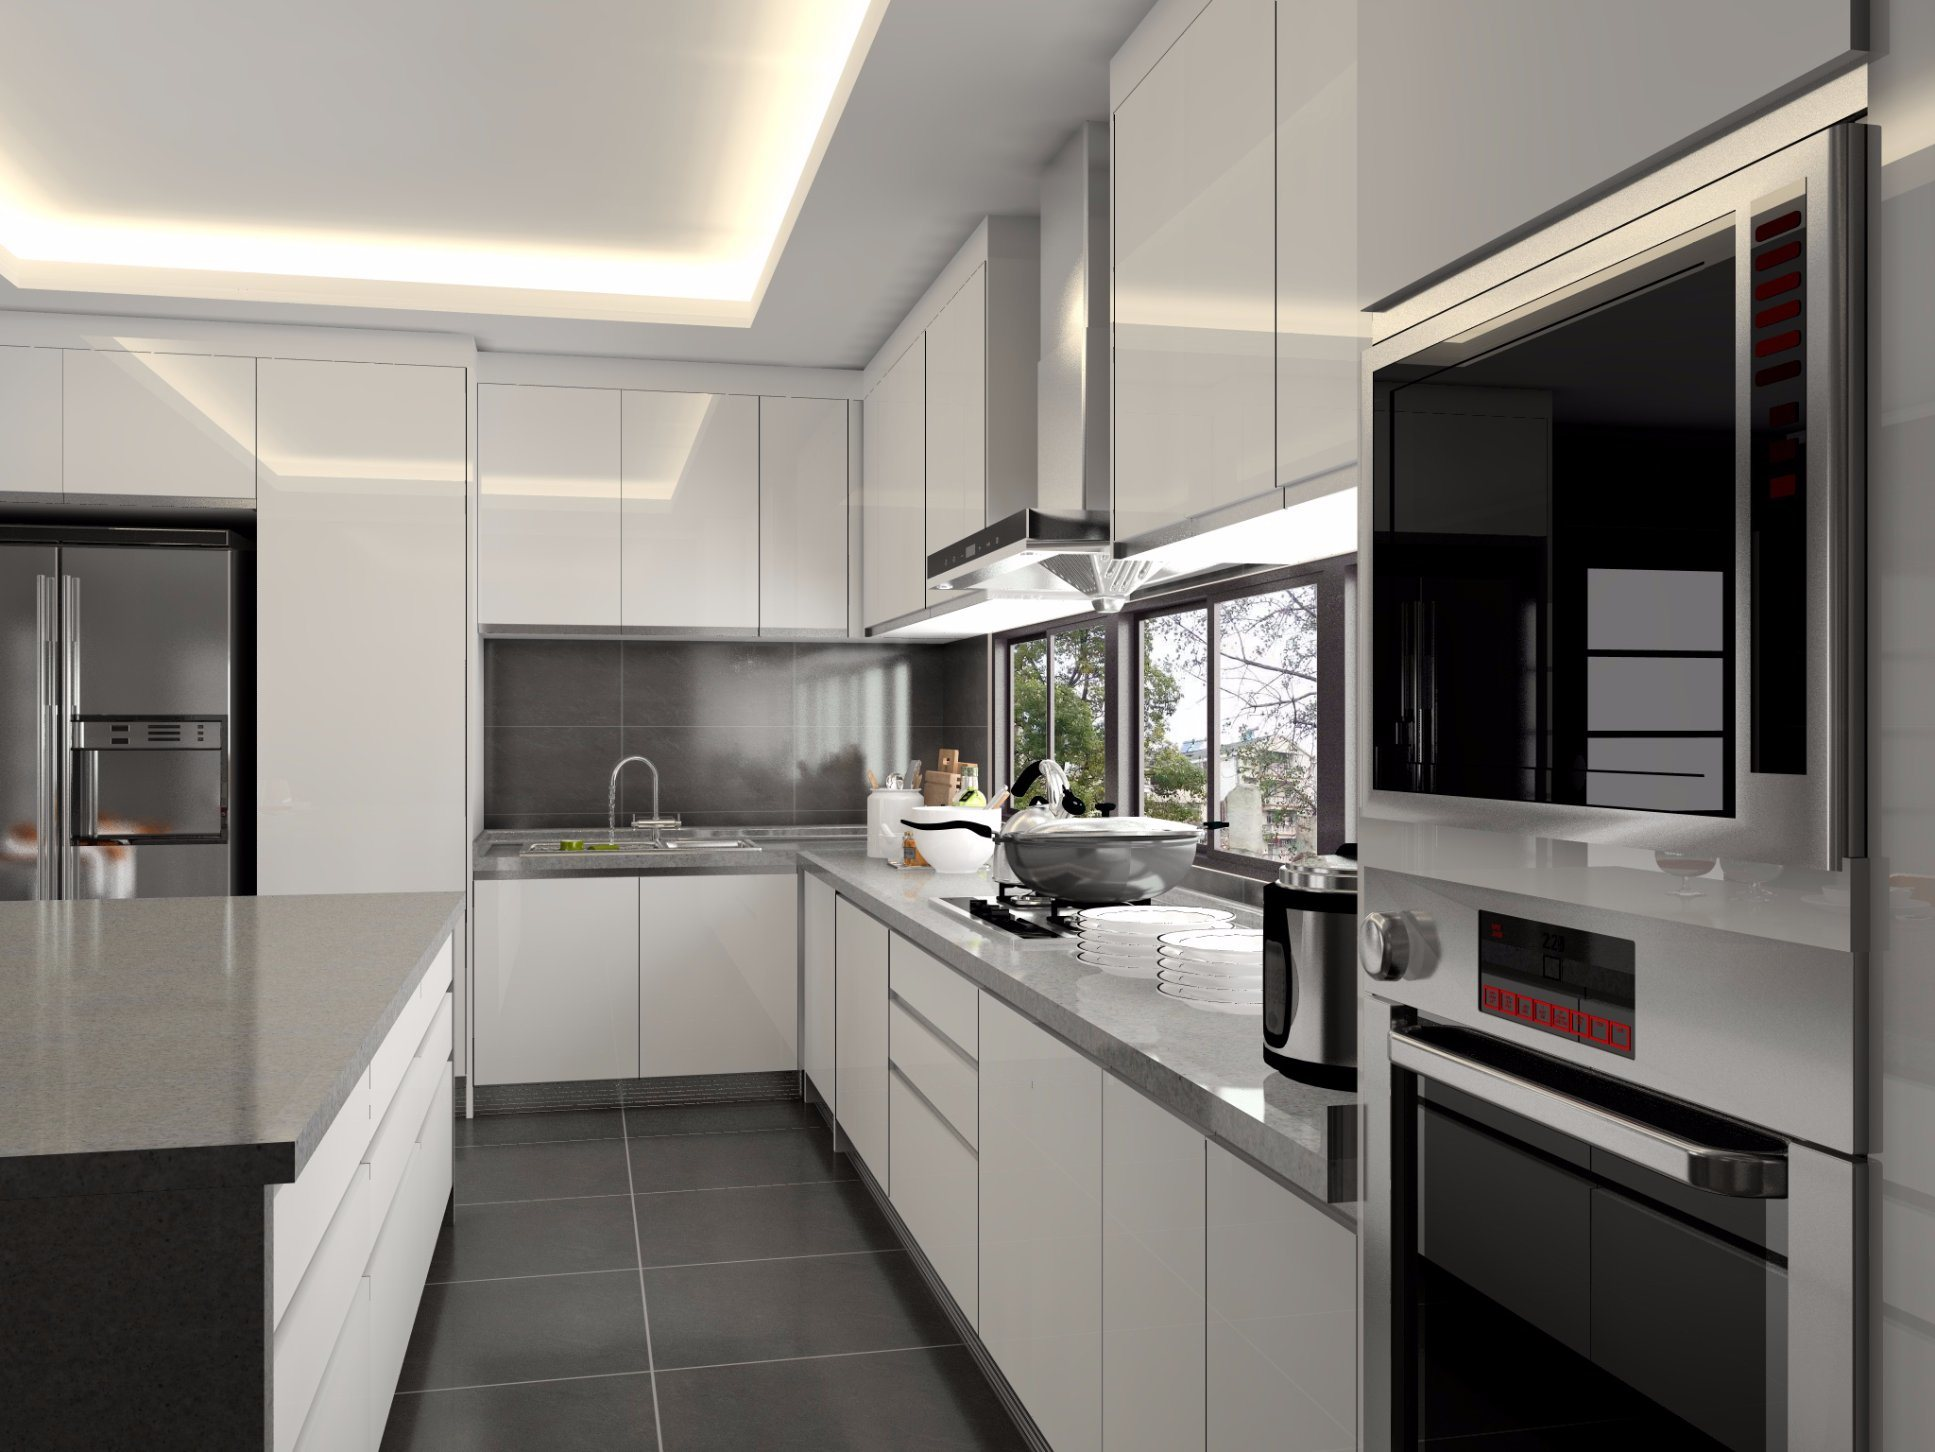 China High Quality Modern Cabinets Design Modular Kitchen Cabinet Photos Pictures Made In China Com